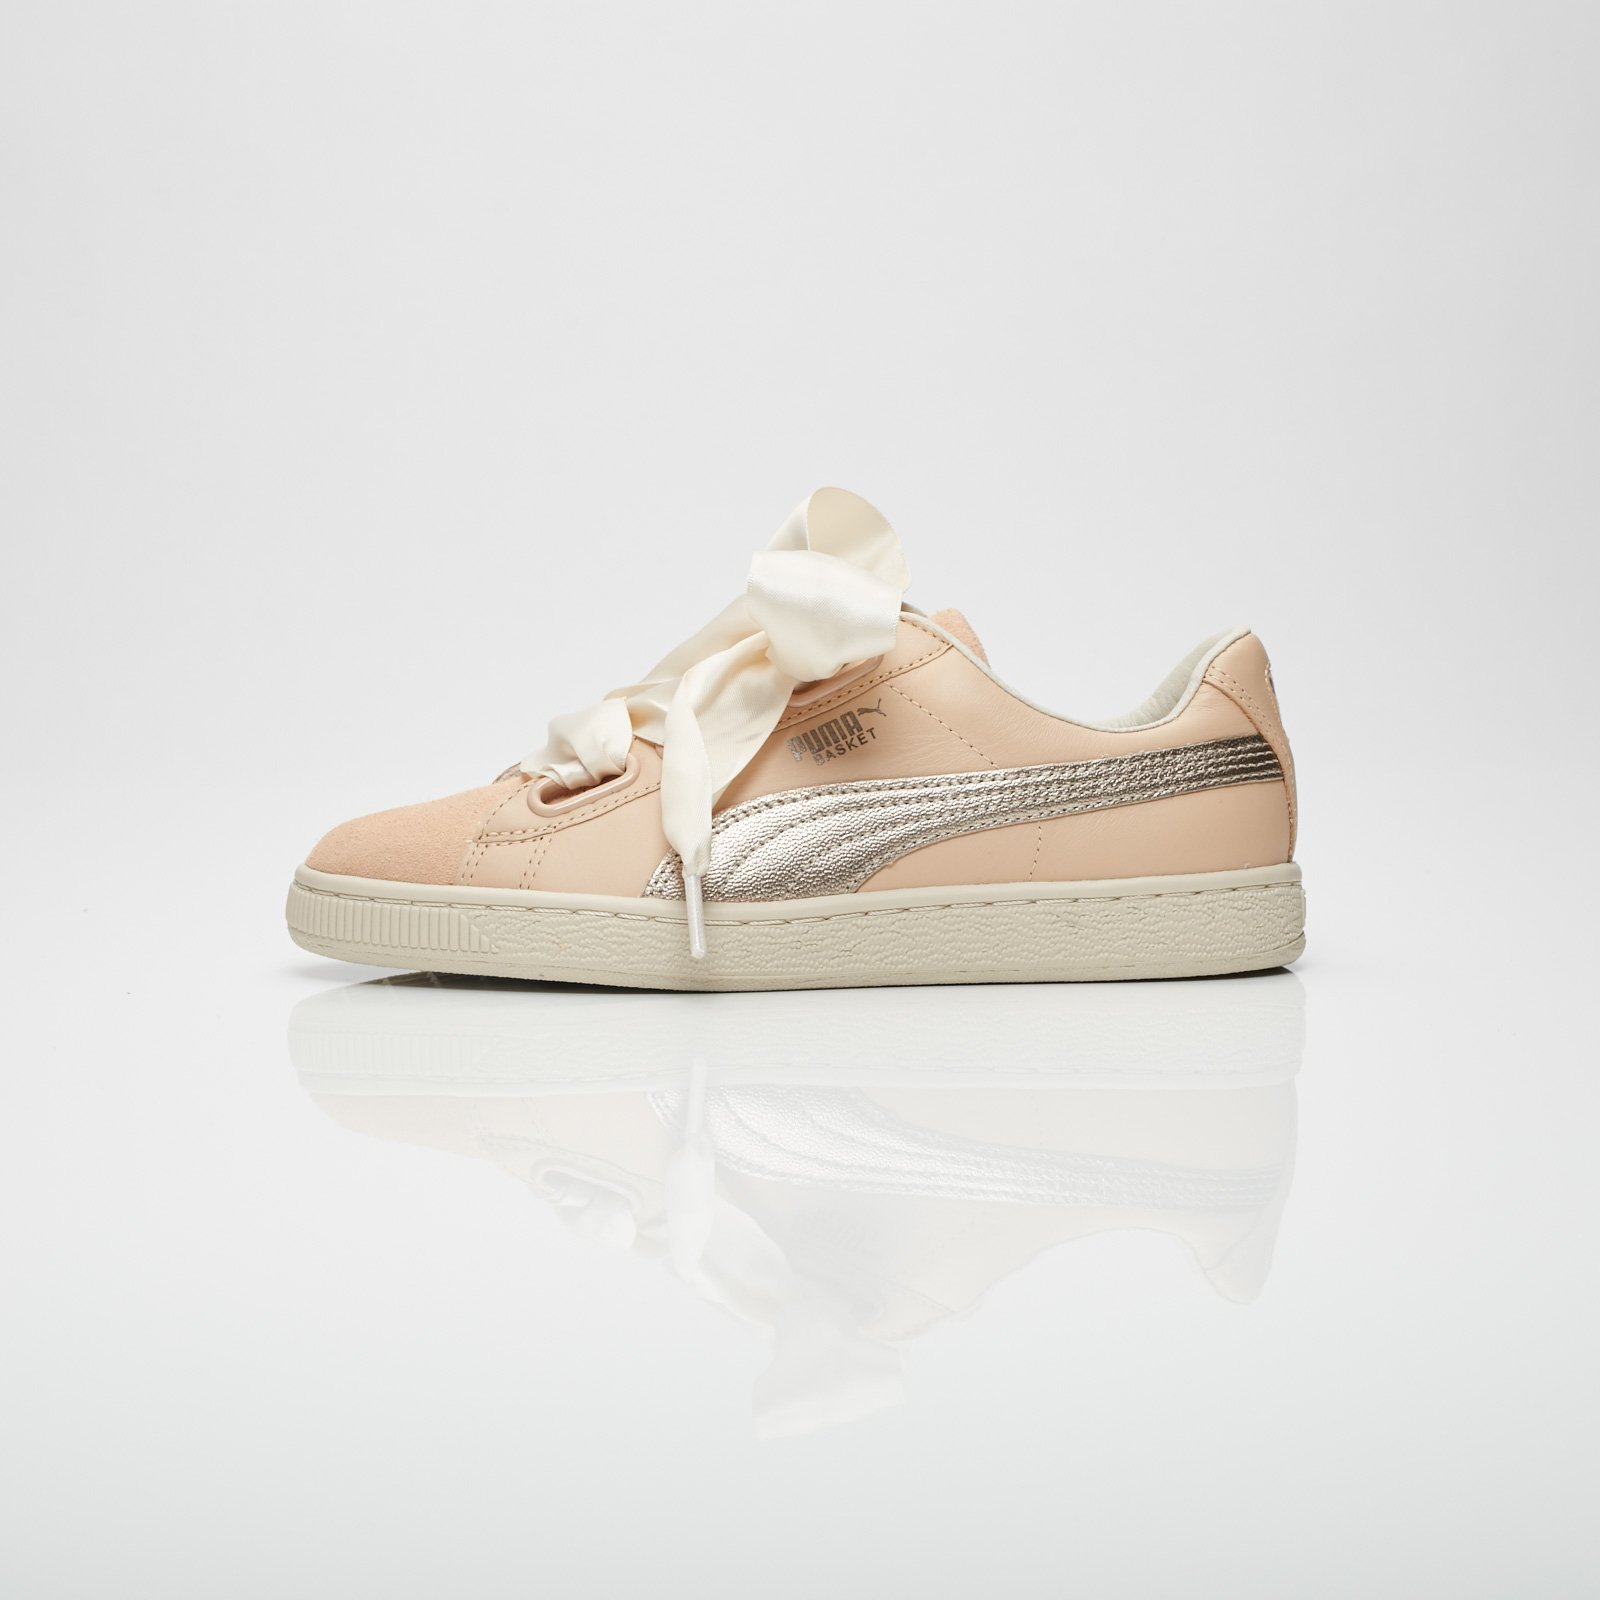 sports shoes 27bd7 5a3c6 Puma Basket Heart Up Wns - 364955-01 - Sneakersnstuff ...